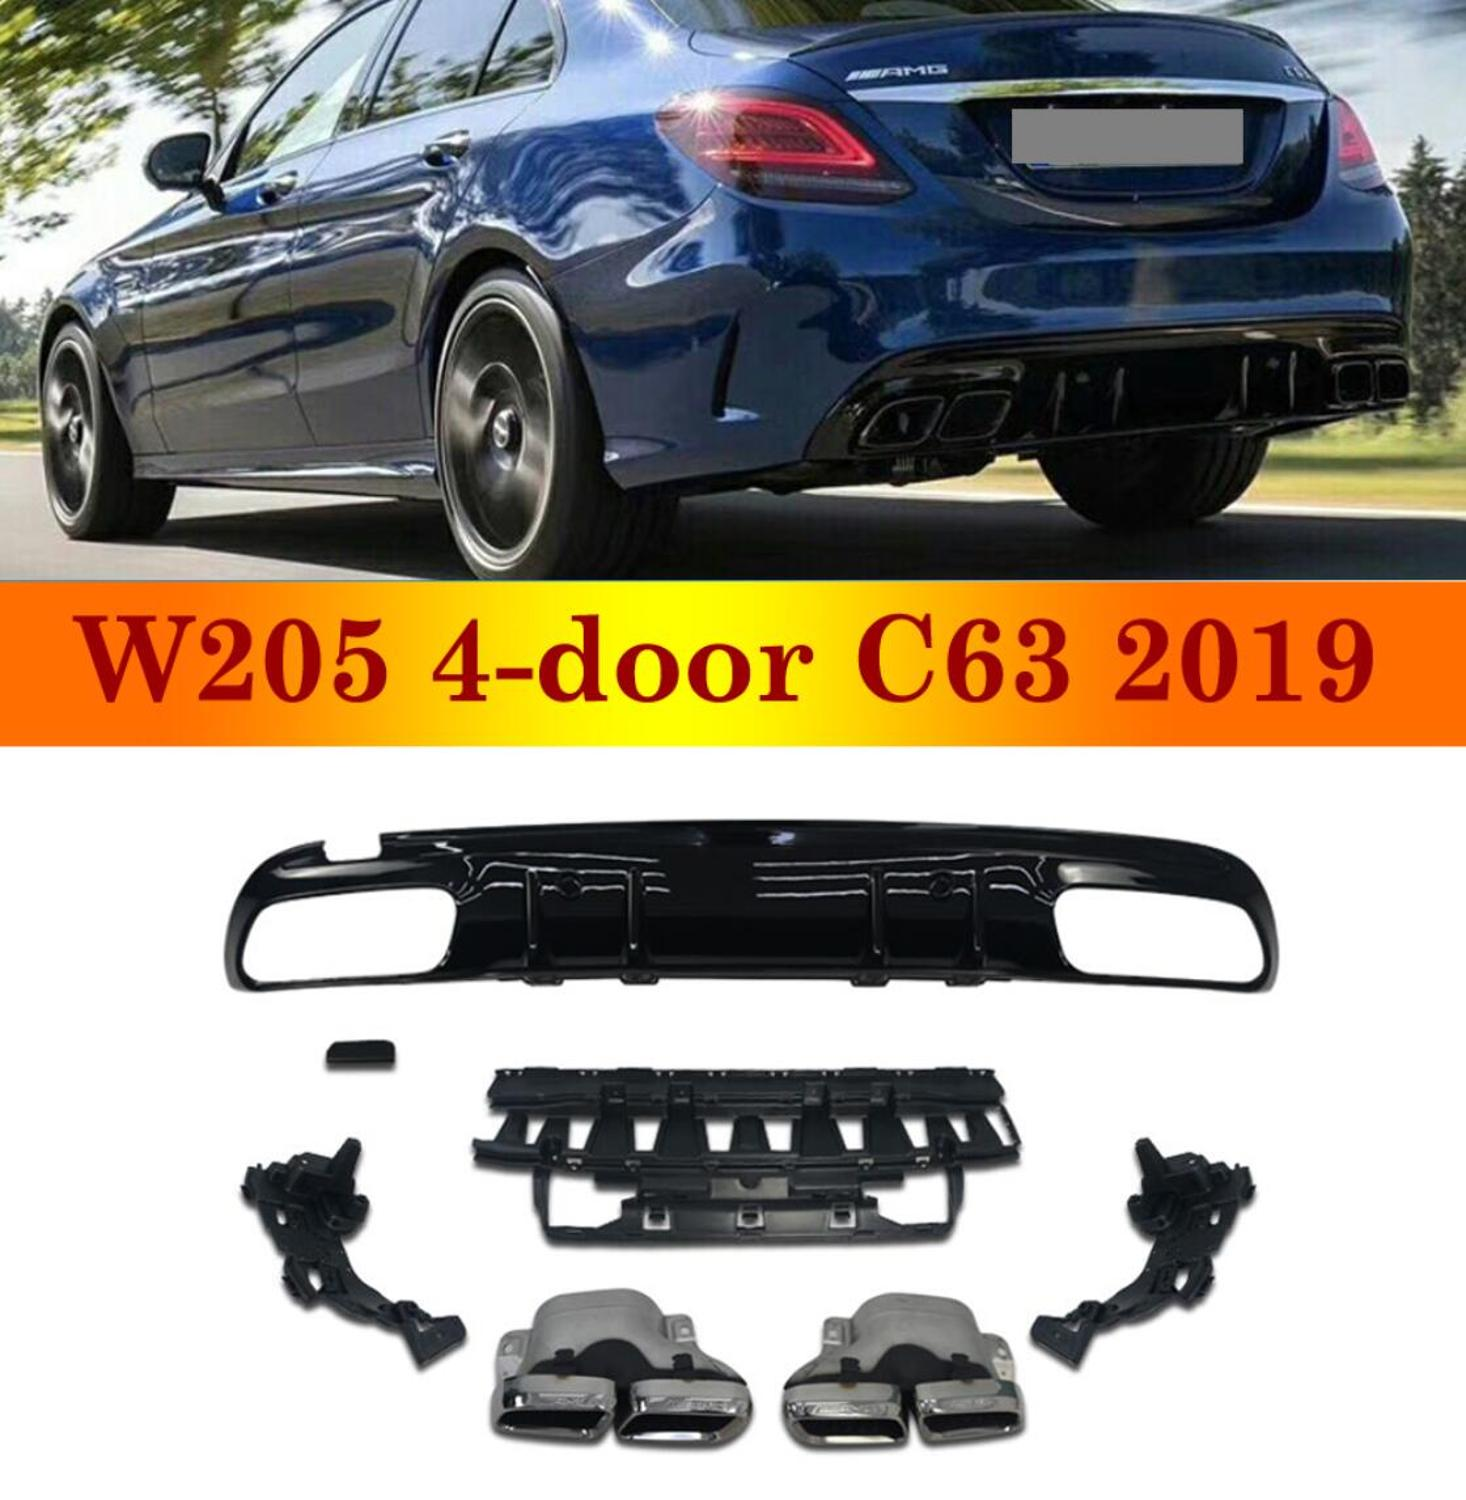 Fits for 2017-2019 Mercedes Benz C-Class W205 2 Door Coupe C200 C250 C300 AMG C43 C63 Edition 1 Style Rear Bumper Diffuser Black Chrome Exhaust Tips